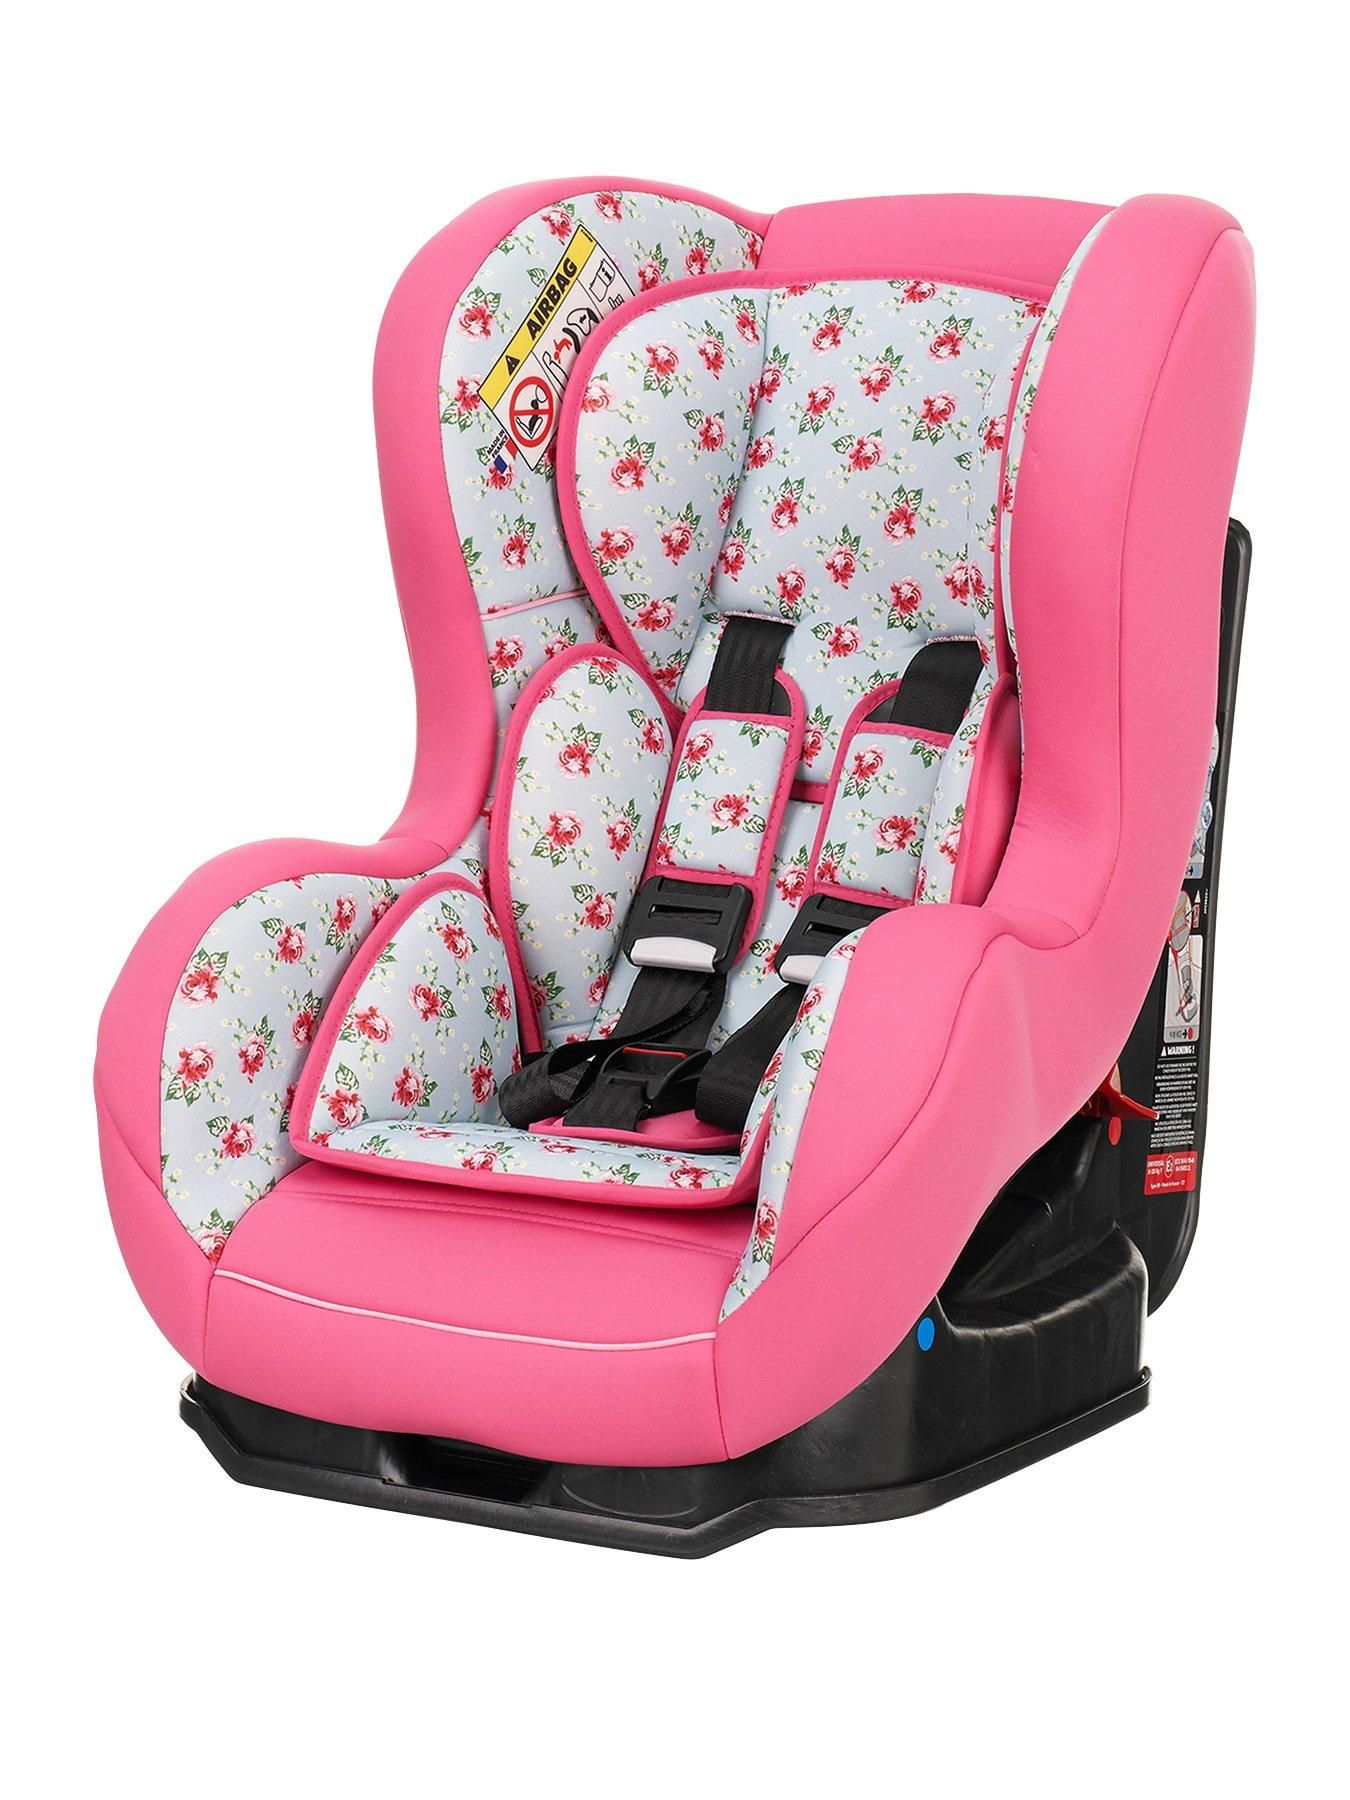 Obaby Cottage Rose Group 0-1 Car Seat Keep your little one safe and  comfortable on the move with this stylish Group 0-1 combination car seat. 414fa5de2